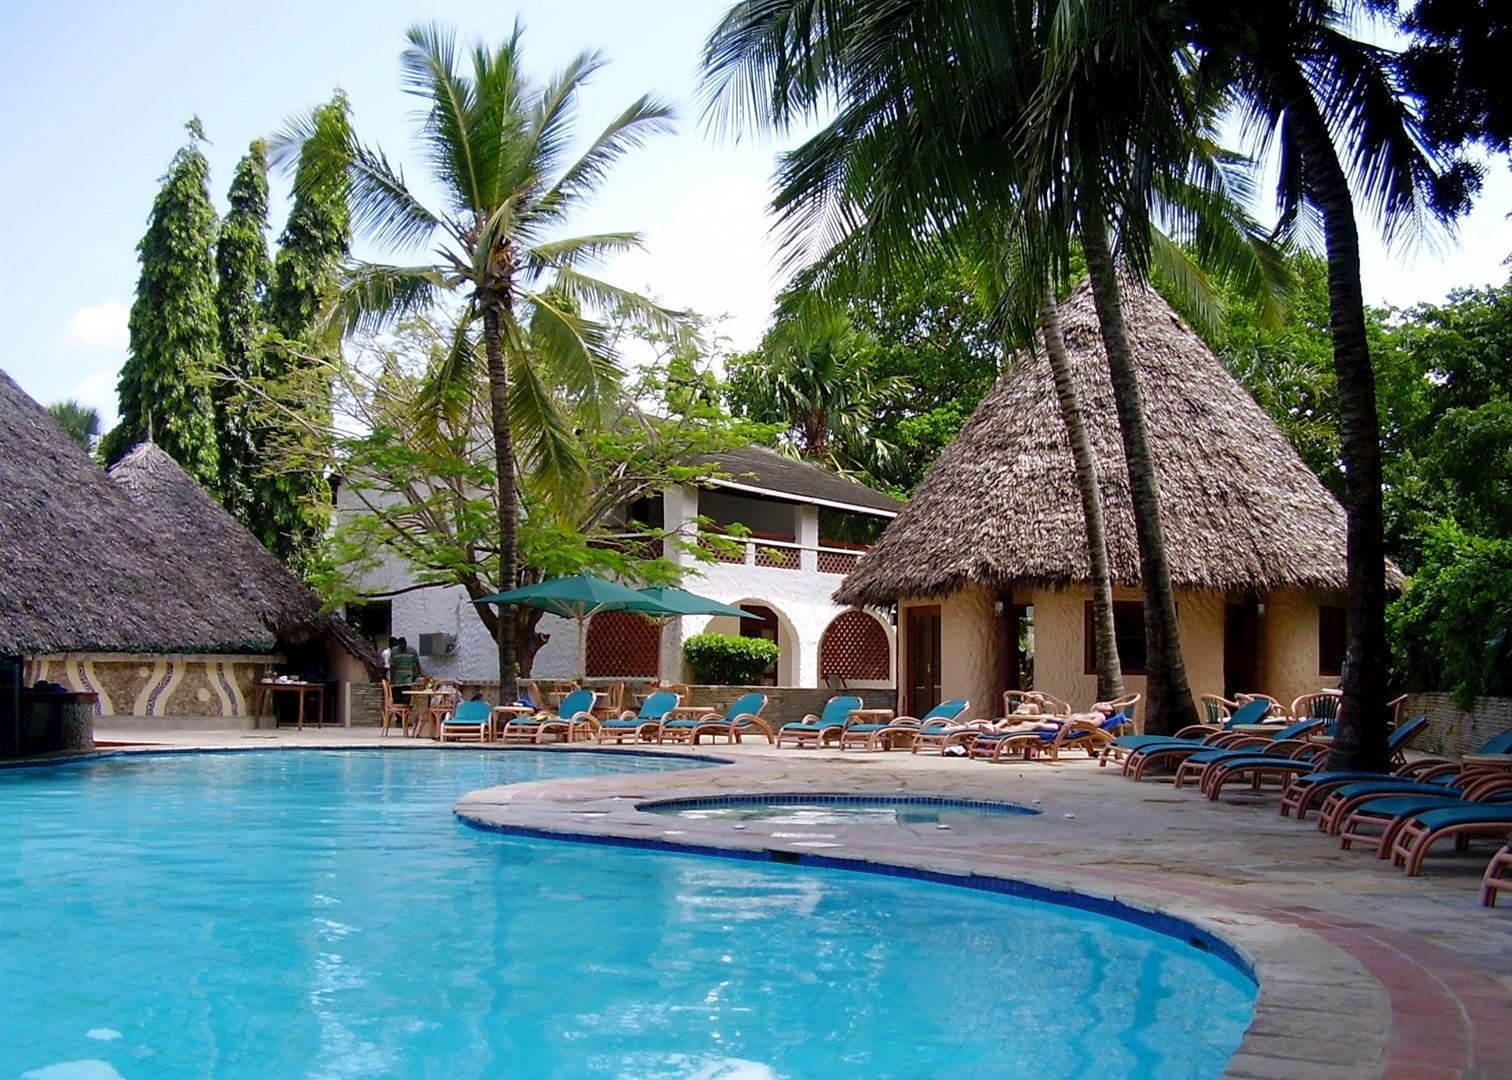 Pinewood Village Hotels In Diani Beach Audley Travel